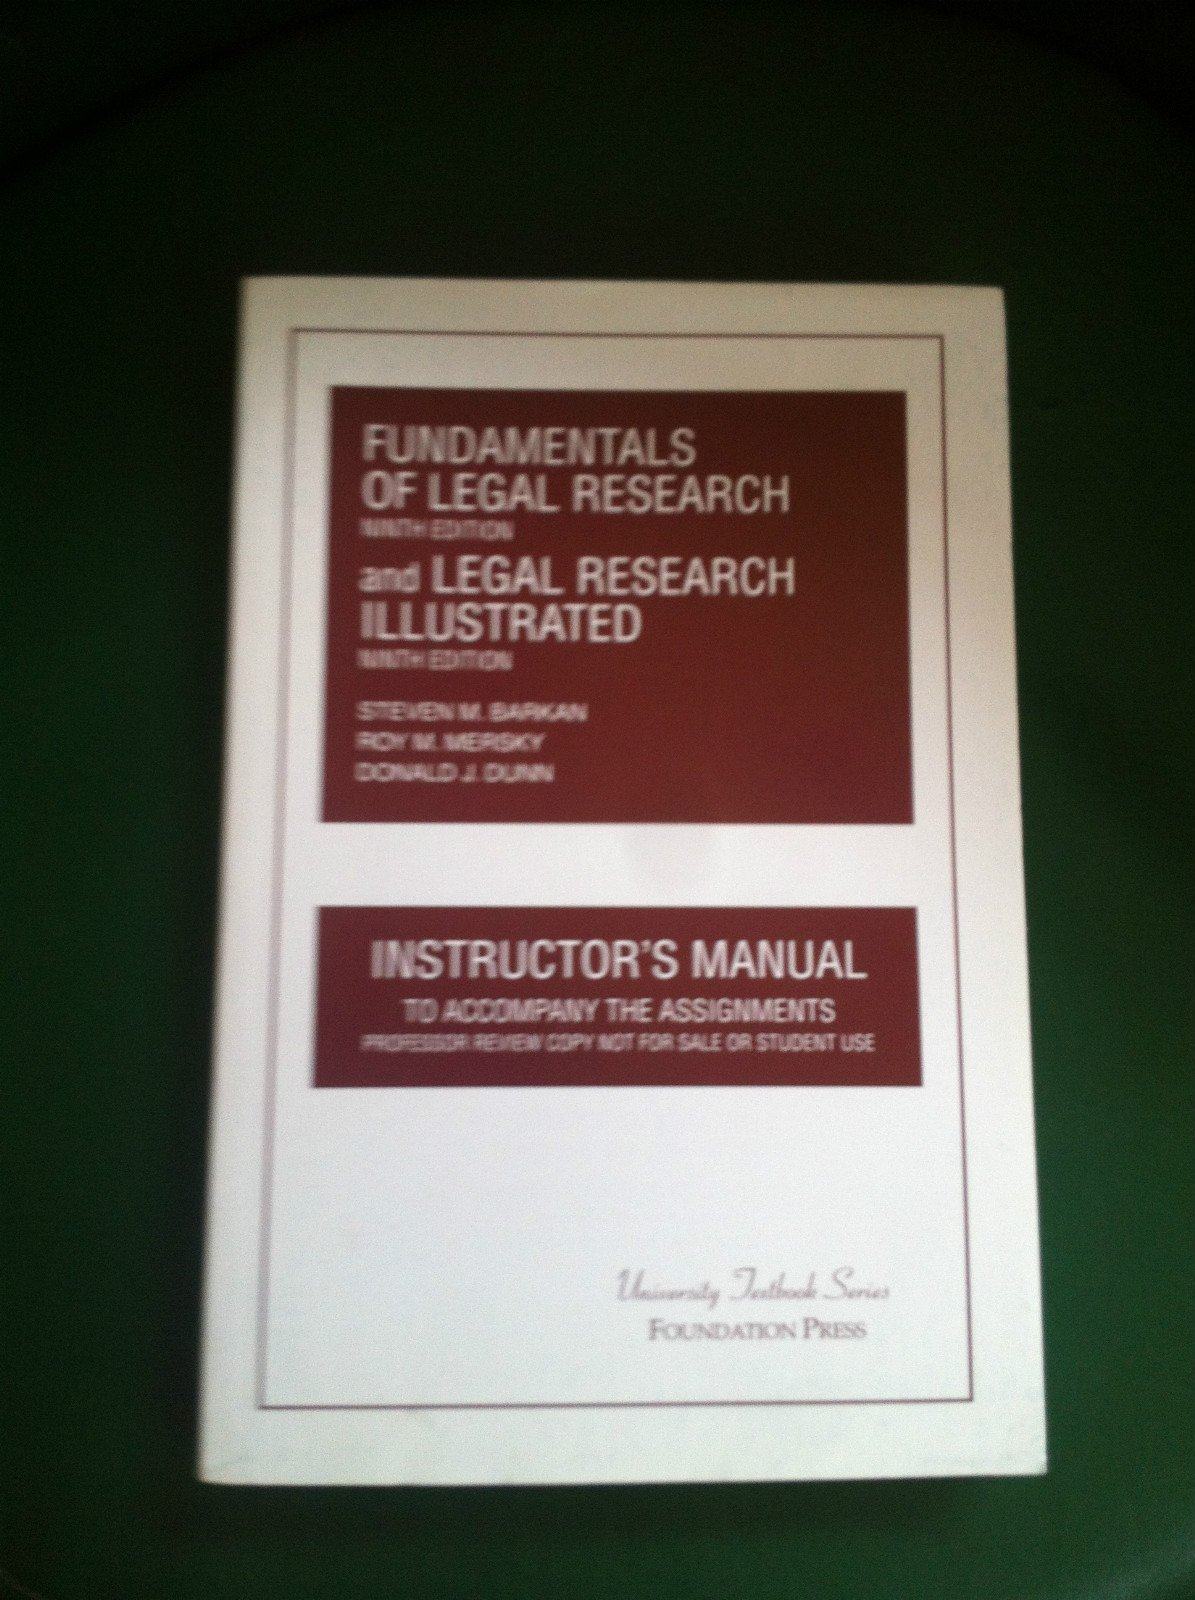 Fundamentals of Legal Research and Legal Research Illustrated - Instructor's Manual Paperback Foundation Press 1599415836